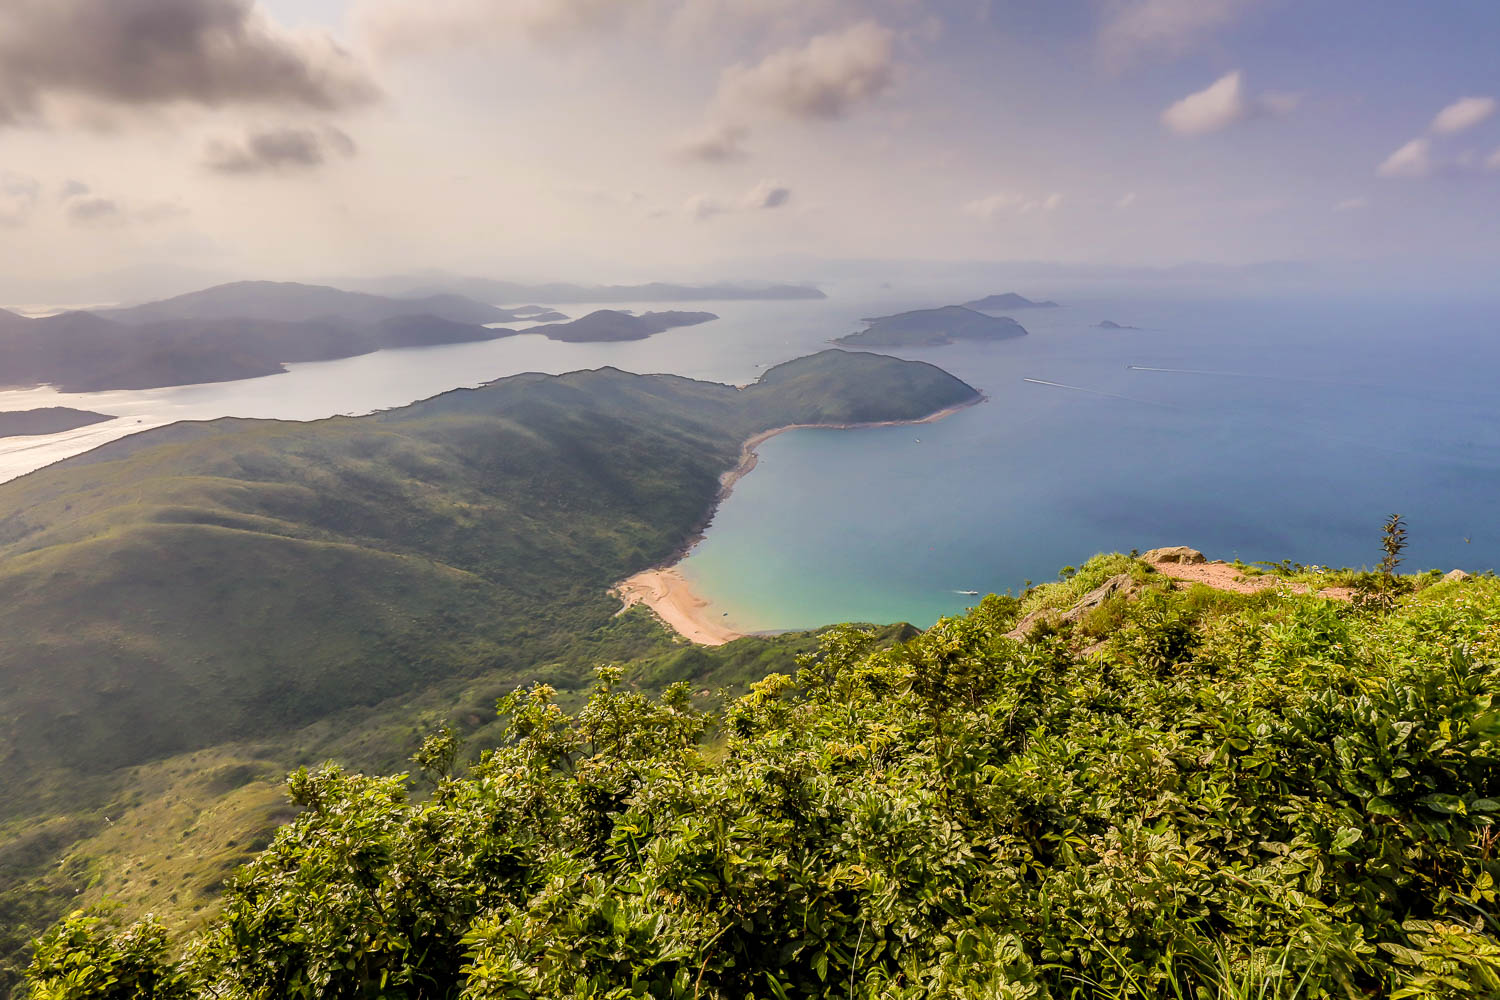 Picture of Sai Kung peninsula from Sharp Peak.